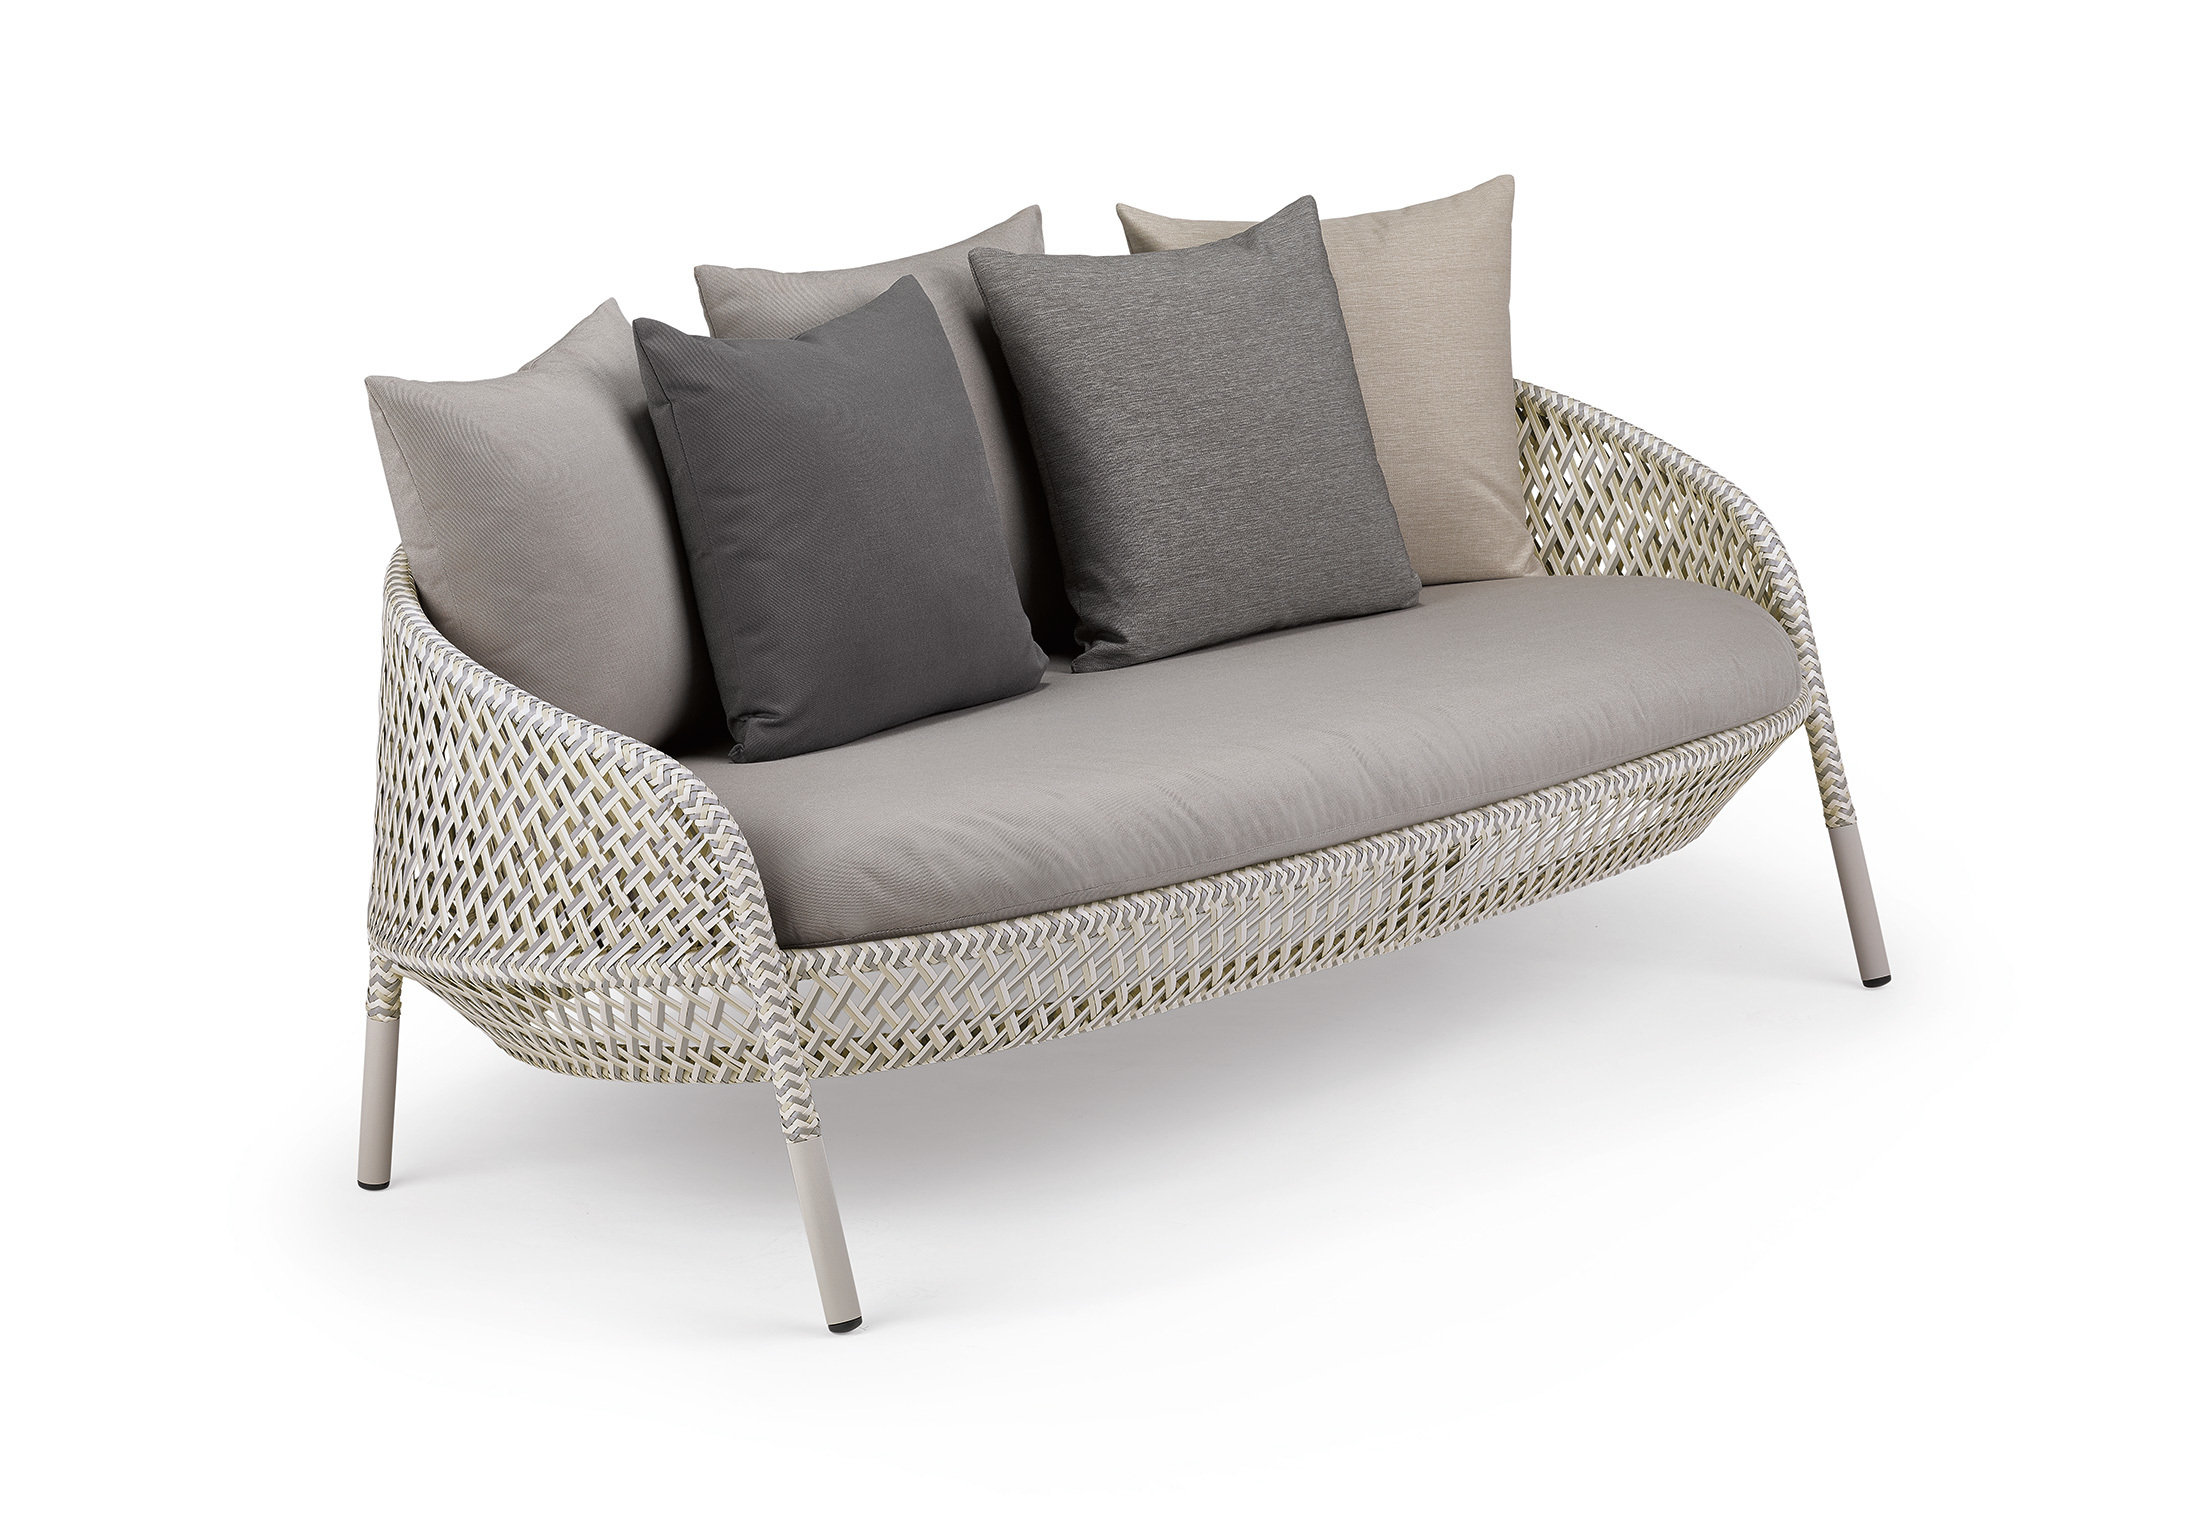 Lounge Sofa 2 Sitzer Outdoor Ahnda 2-seater By Dedon | Stylepark